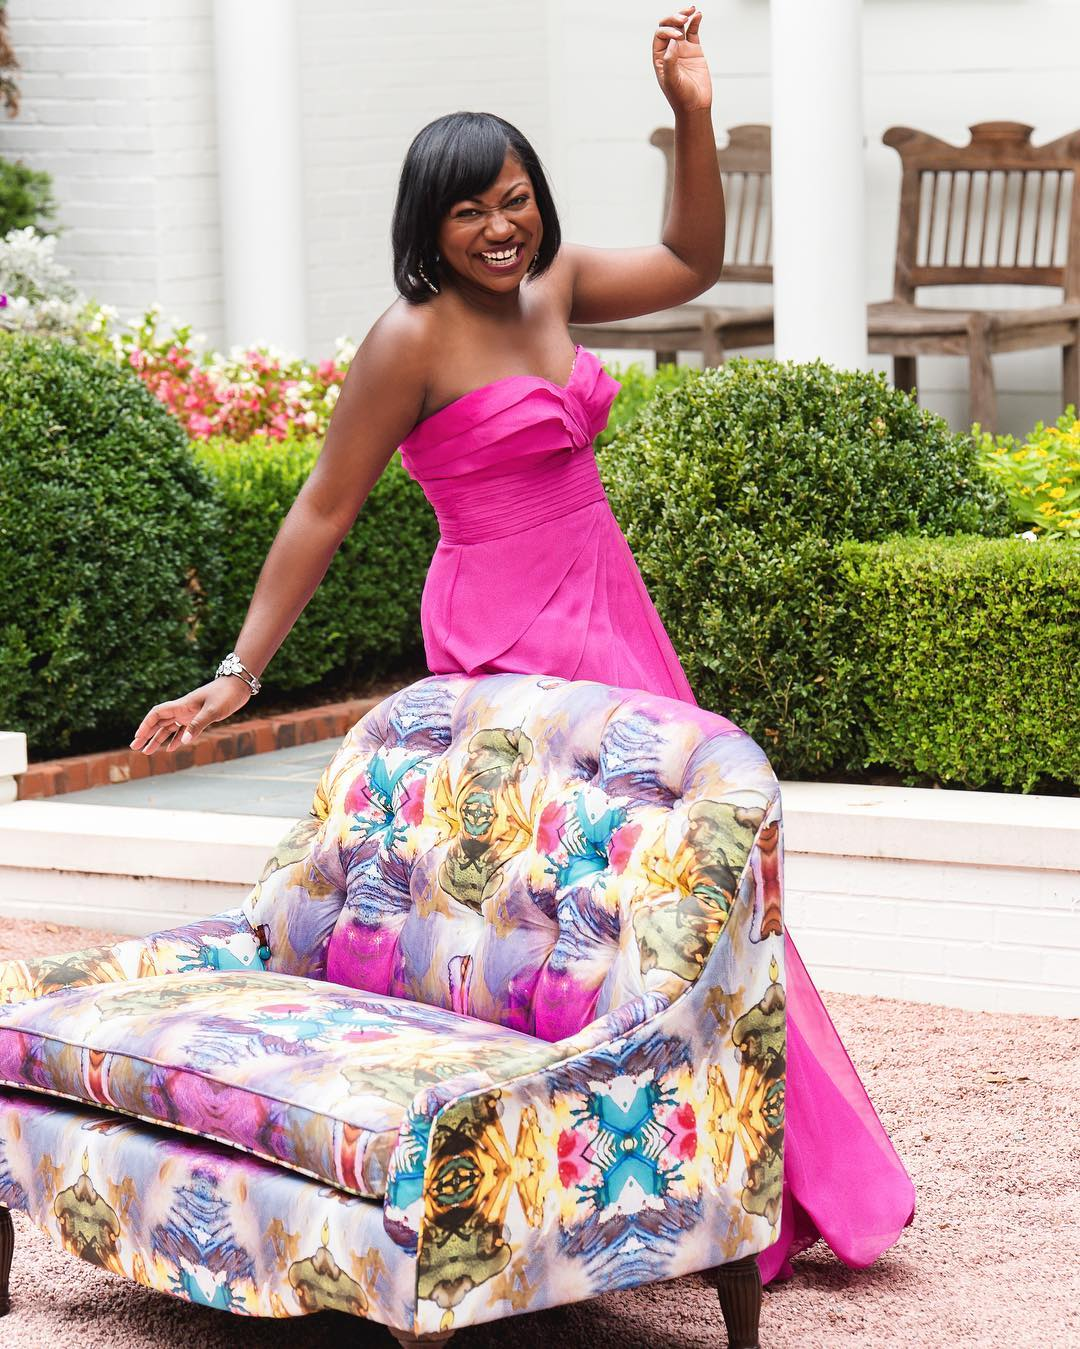 42983418_1975977079125124_7908632064503578624_o Southern Roots: Launch of Belle by Cheryl Luckett Furniture Collection